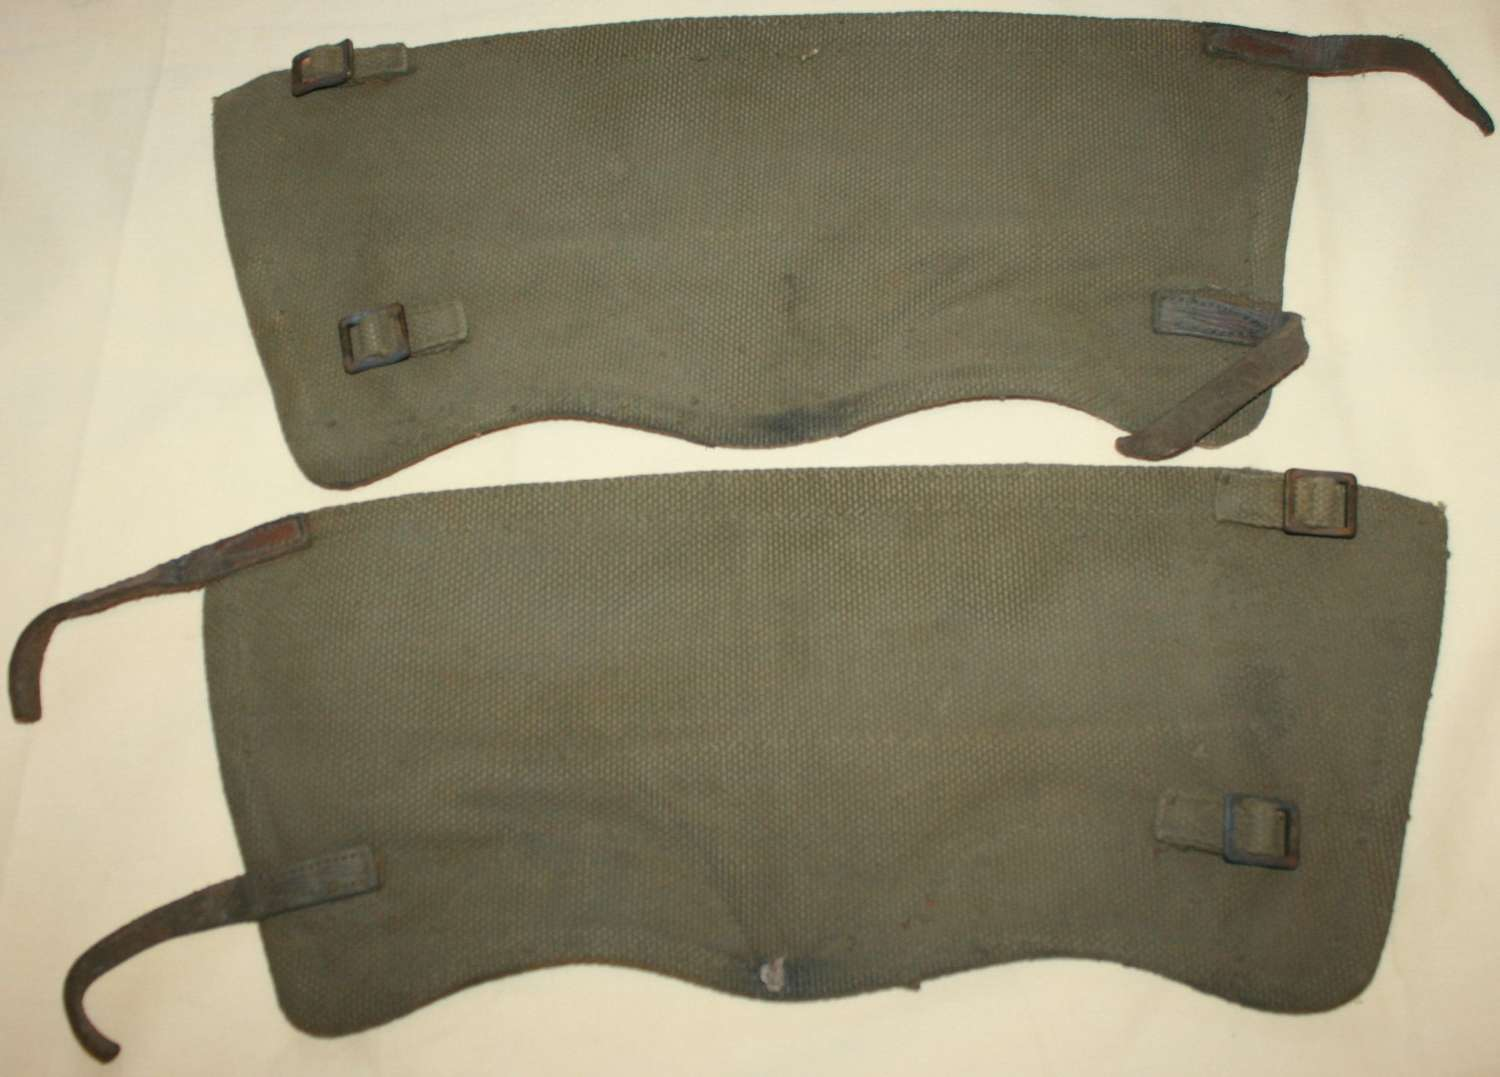 A GOOD USED PAIR OF GATTERS SIZE 3 1942 DATED